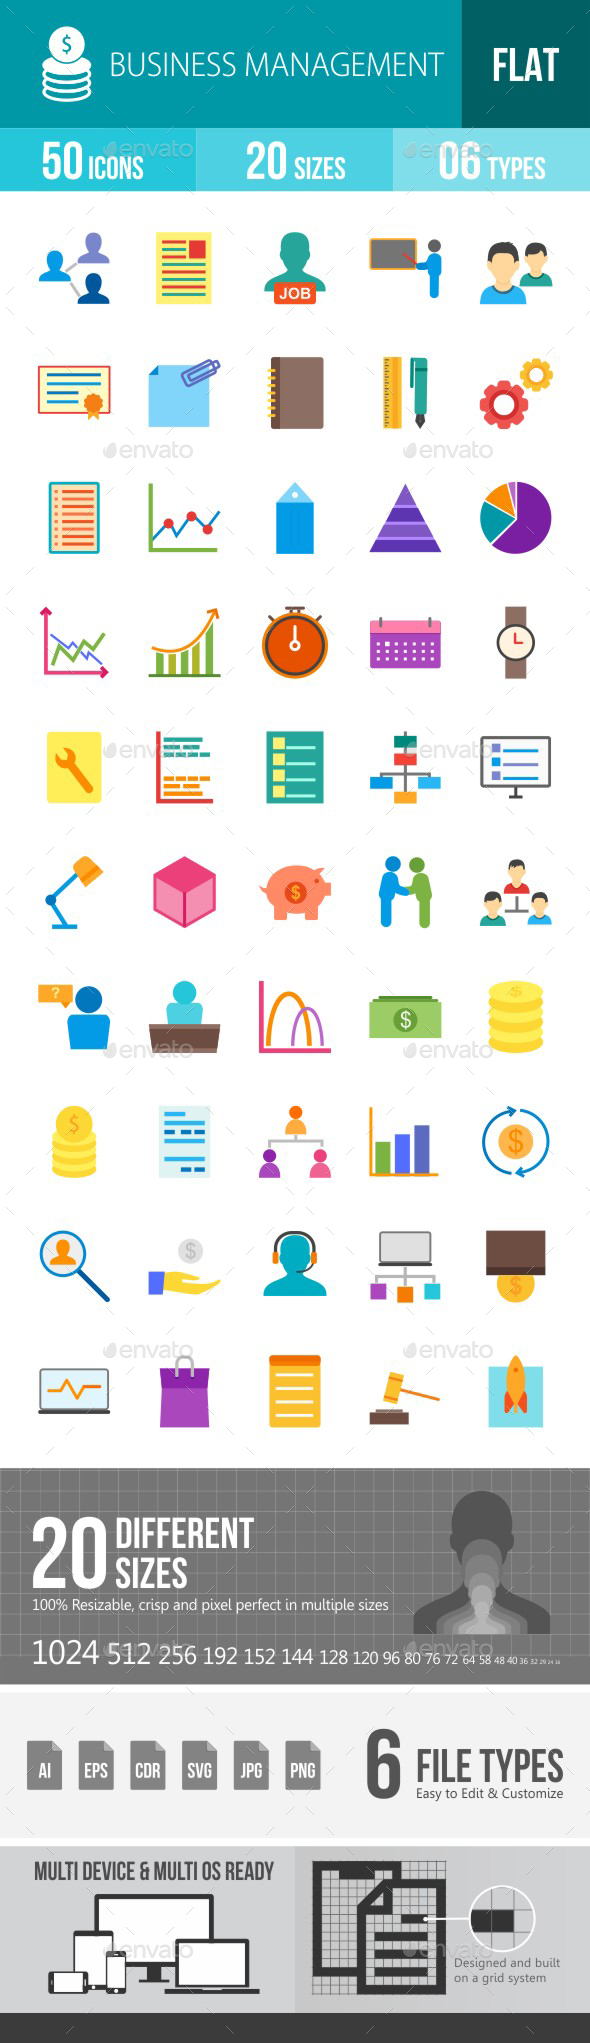 Business Management Flat Multicolor Icons - Icons